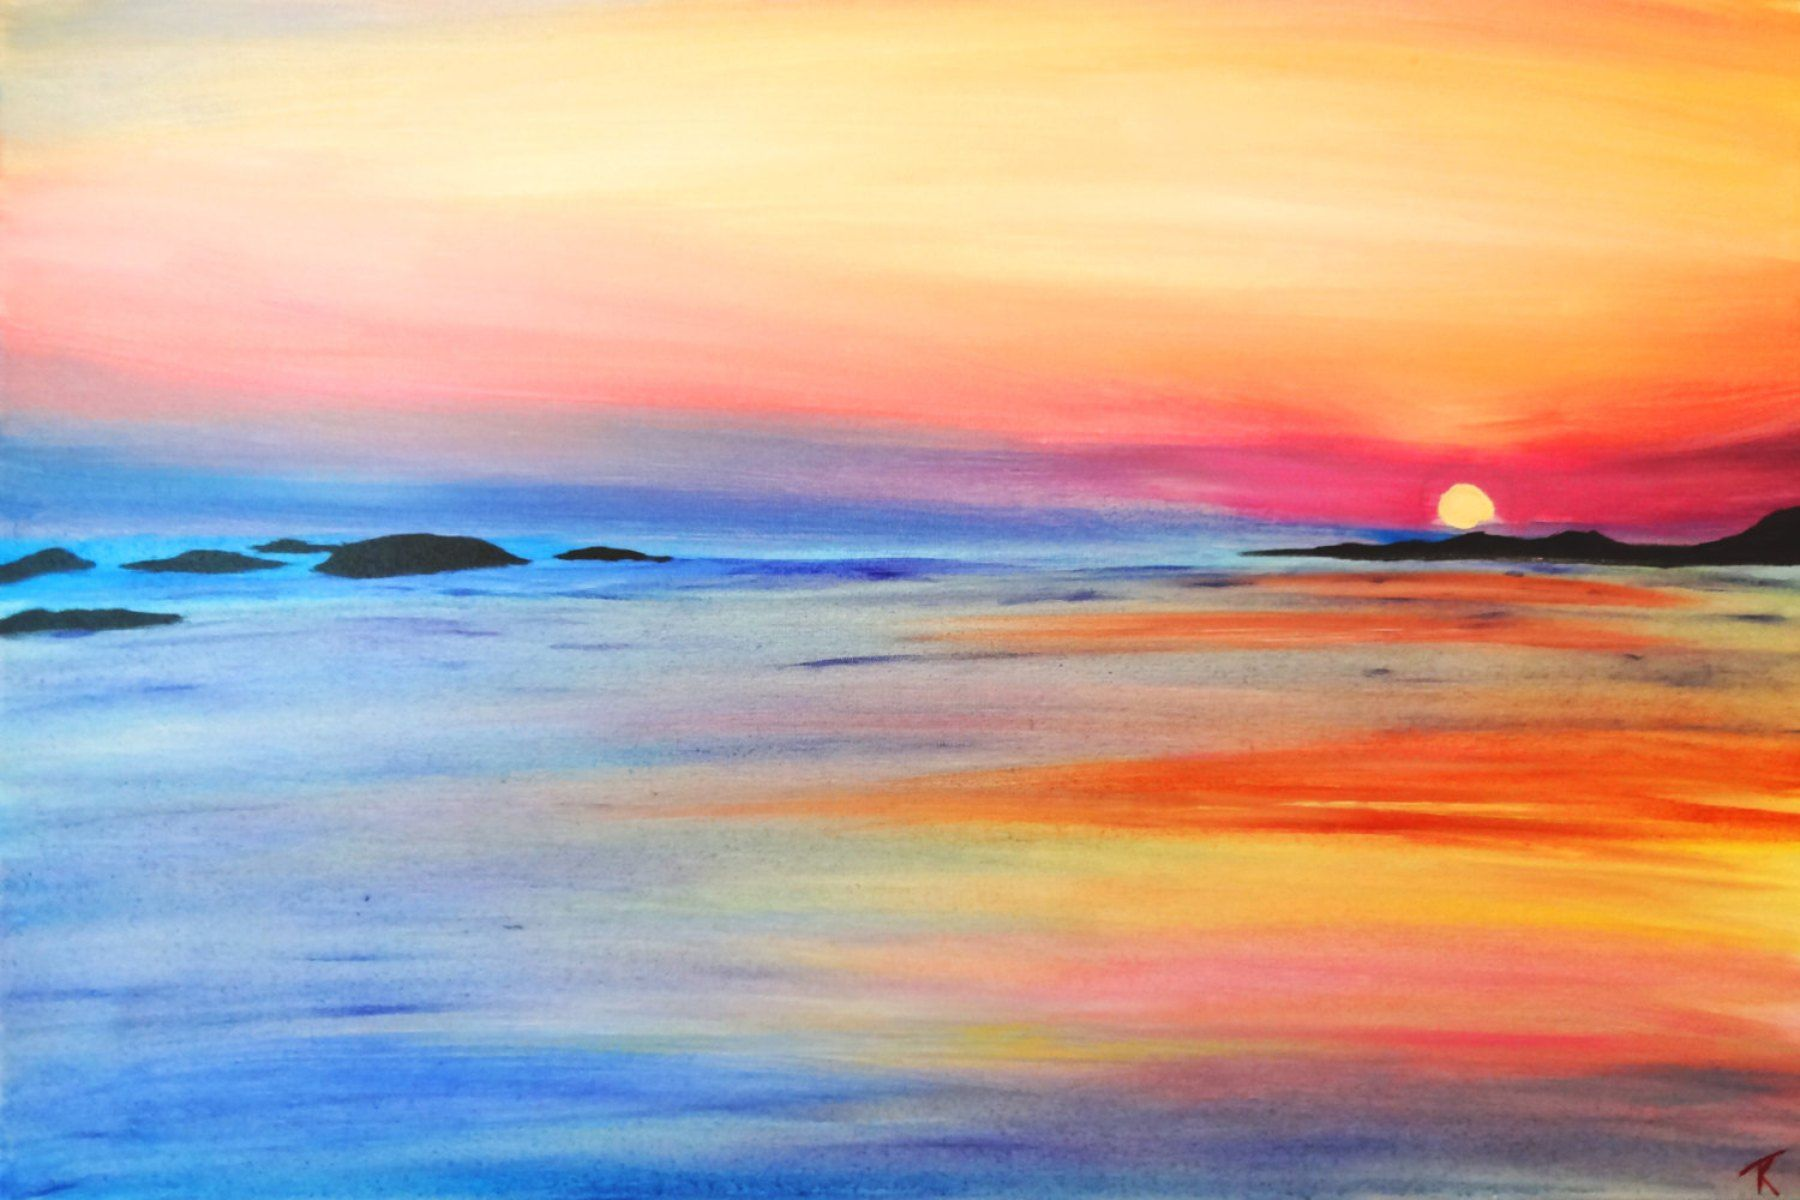 Beach Sunset Painting Sunset Painting Ocean Painting Beach